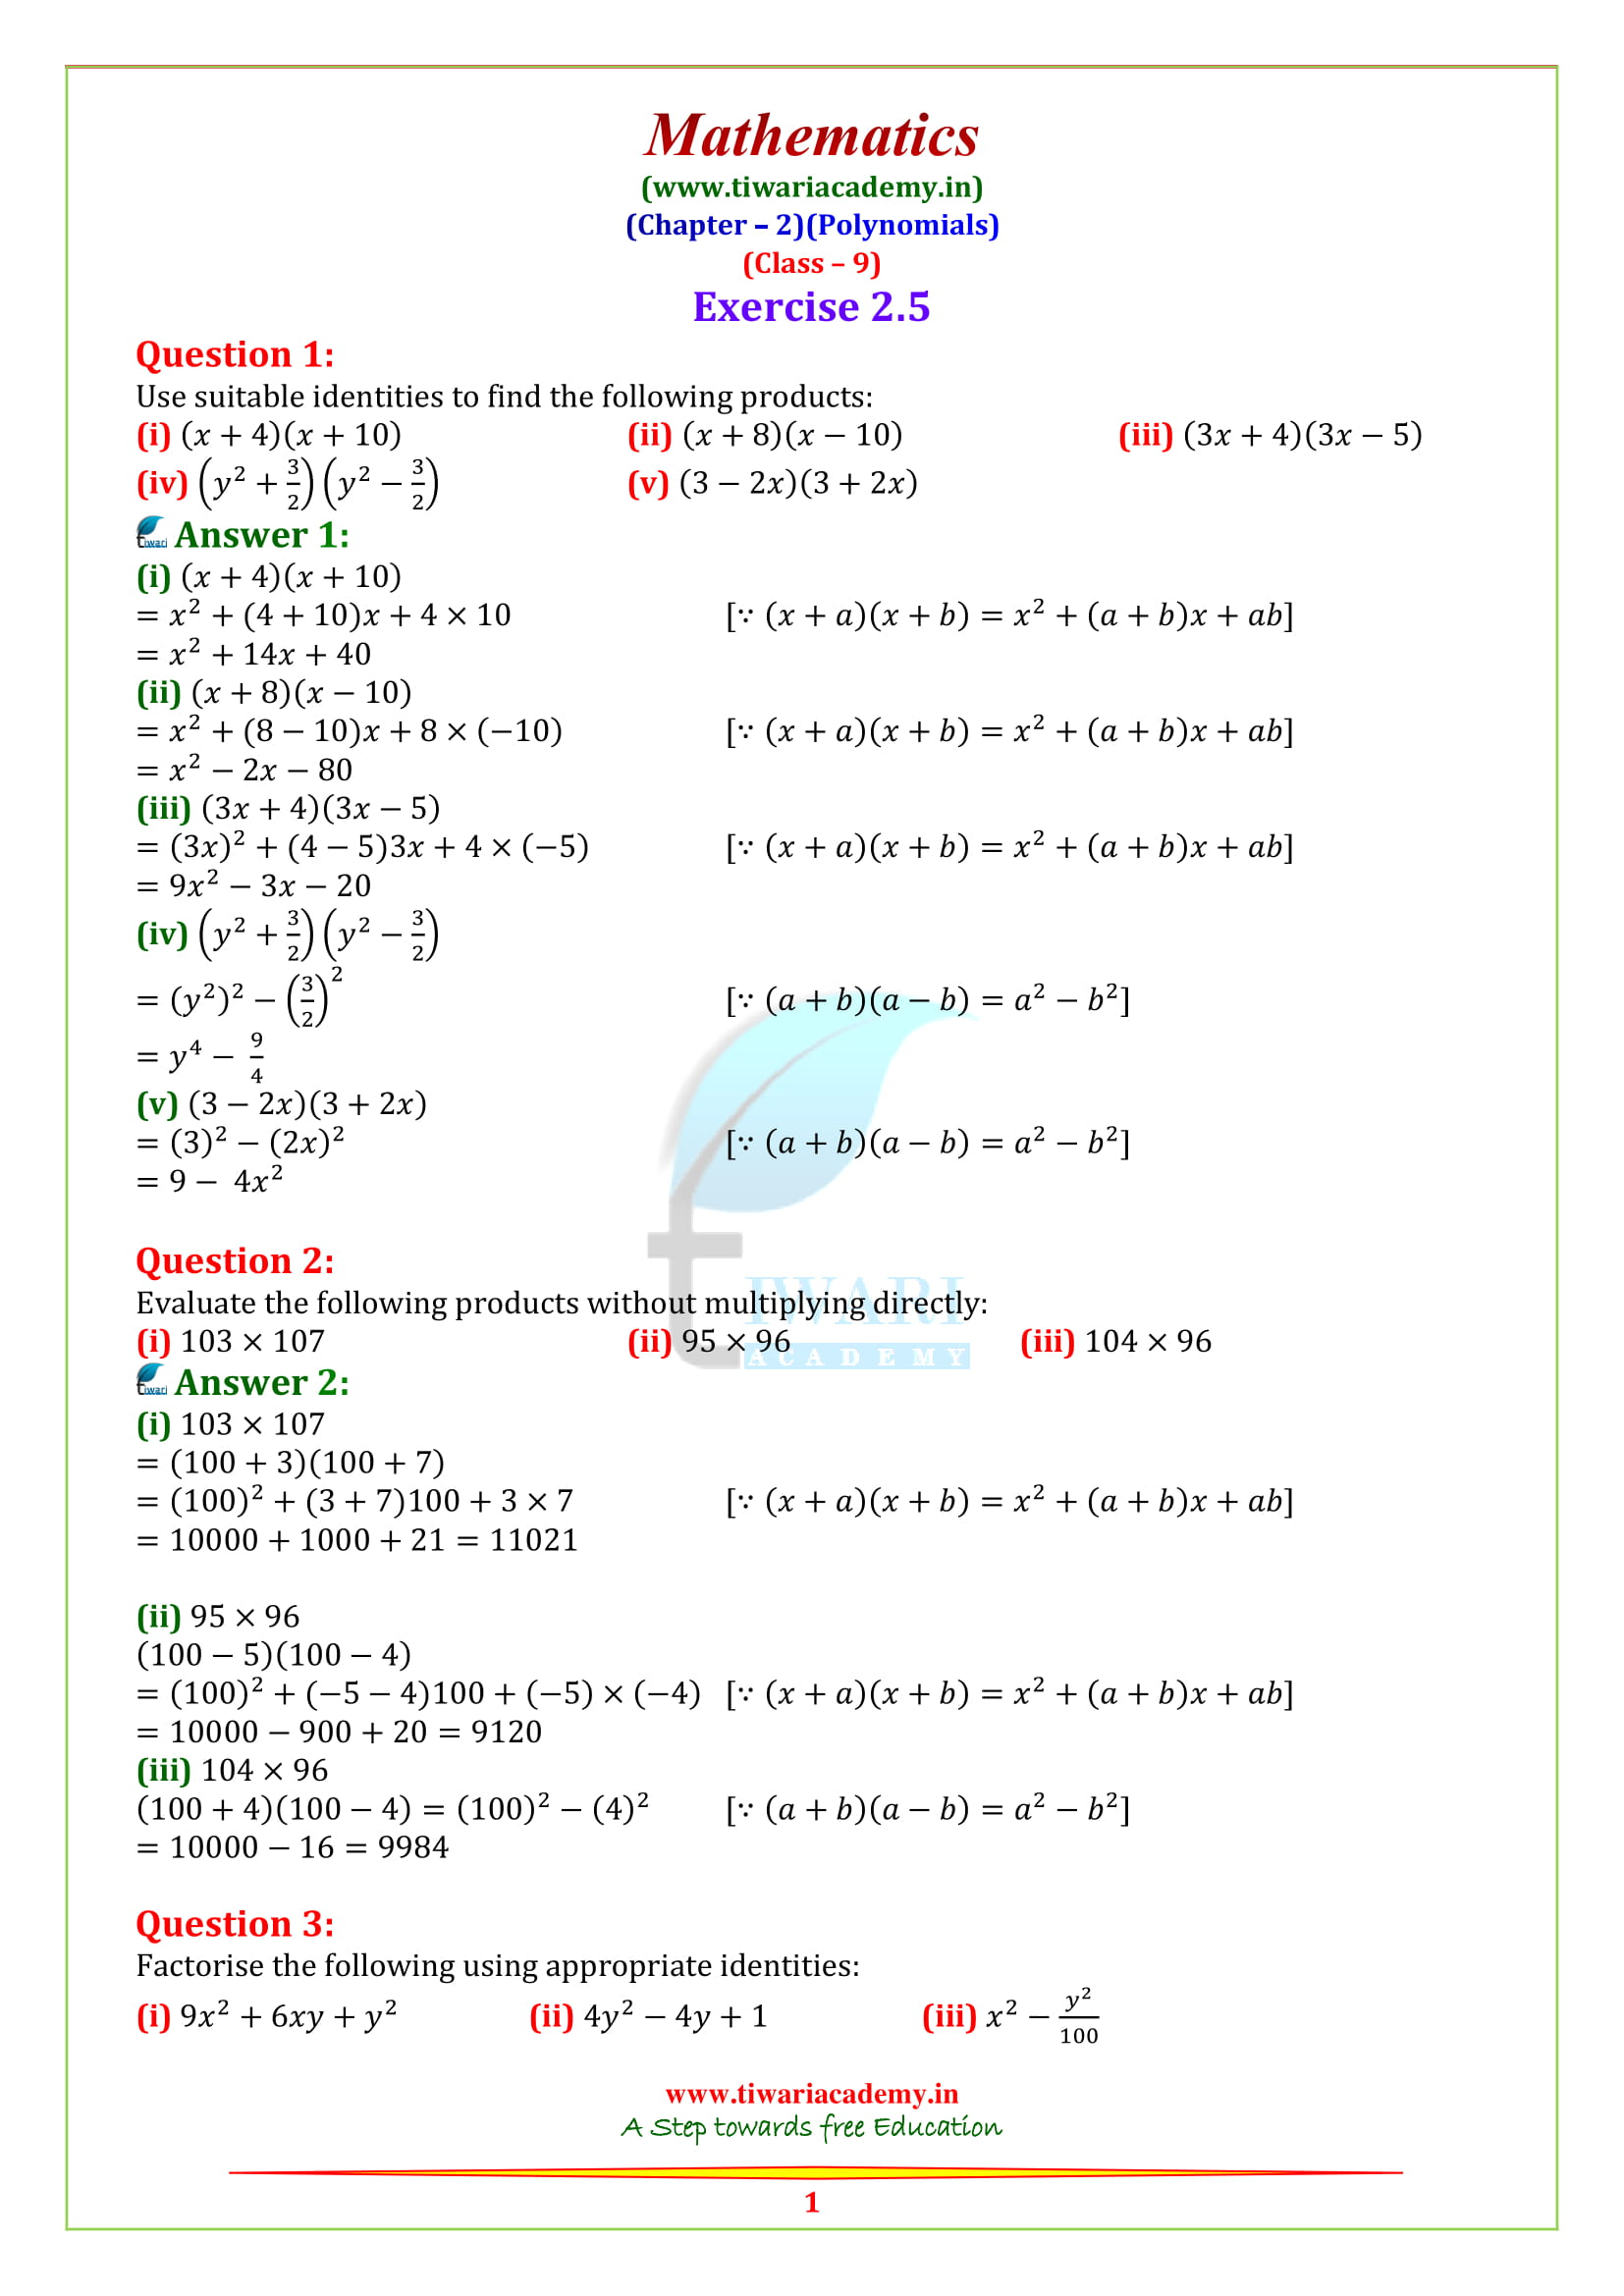 NCERT Solutions for Class 9 Maths Chapter 2 Polynomials in PDF